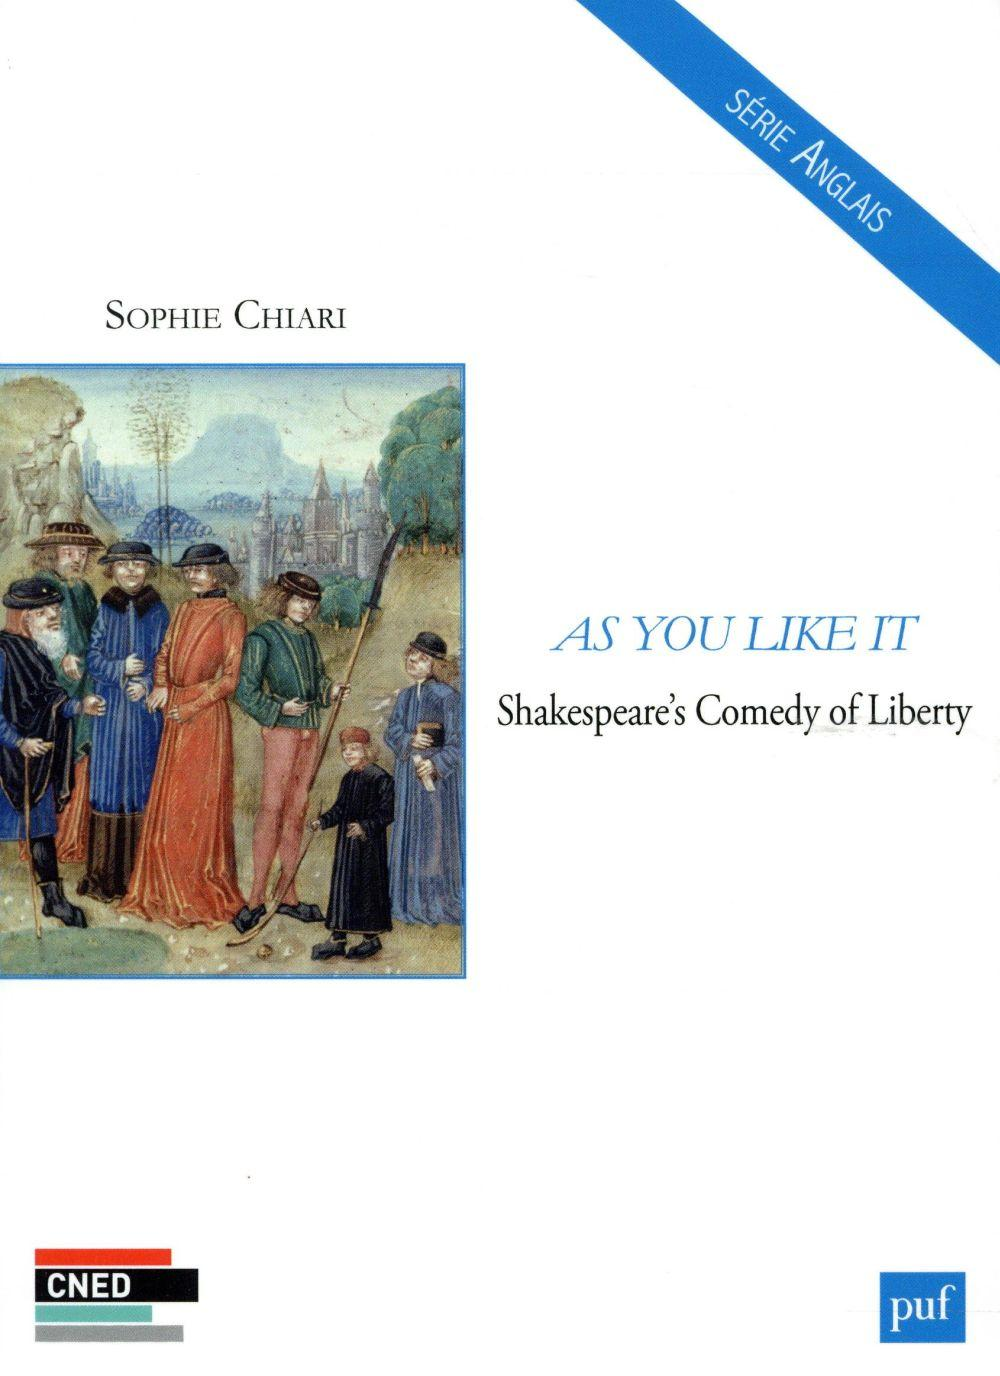 As you like it ; Shakespeare's Comedy of Liberty  - Sophie Chiari